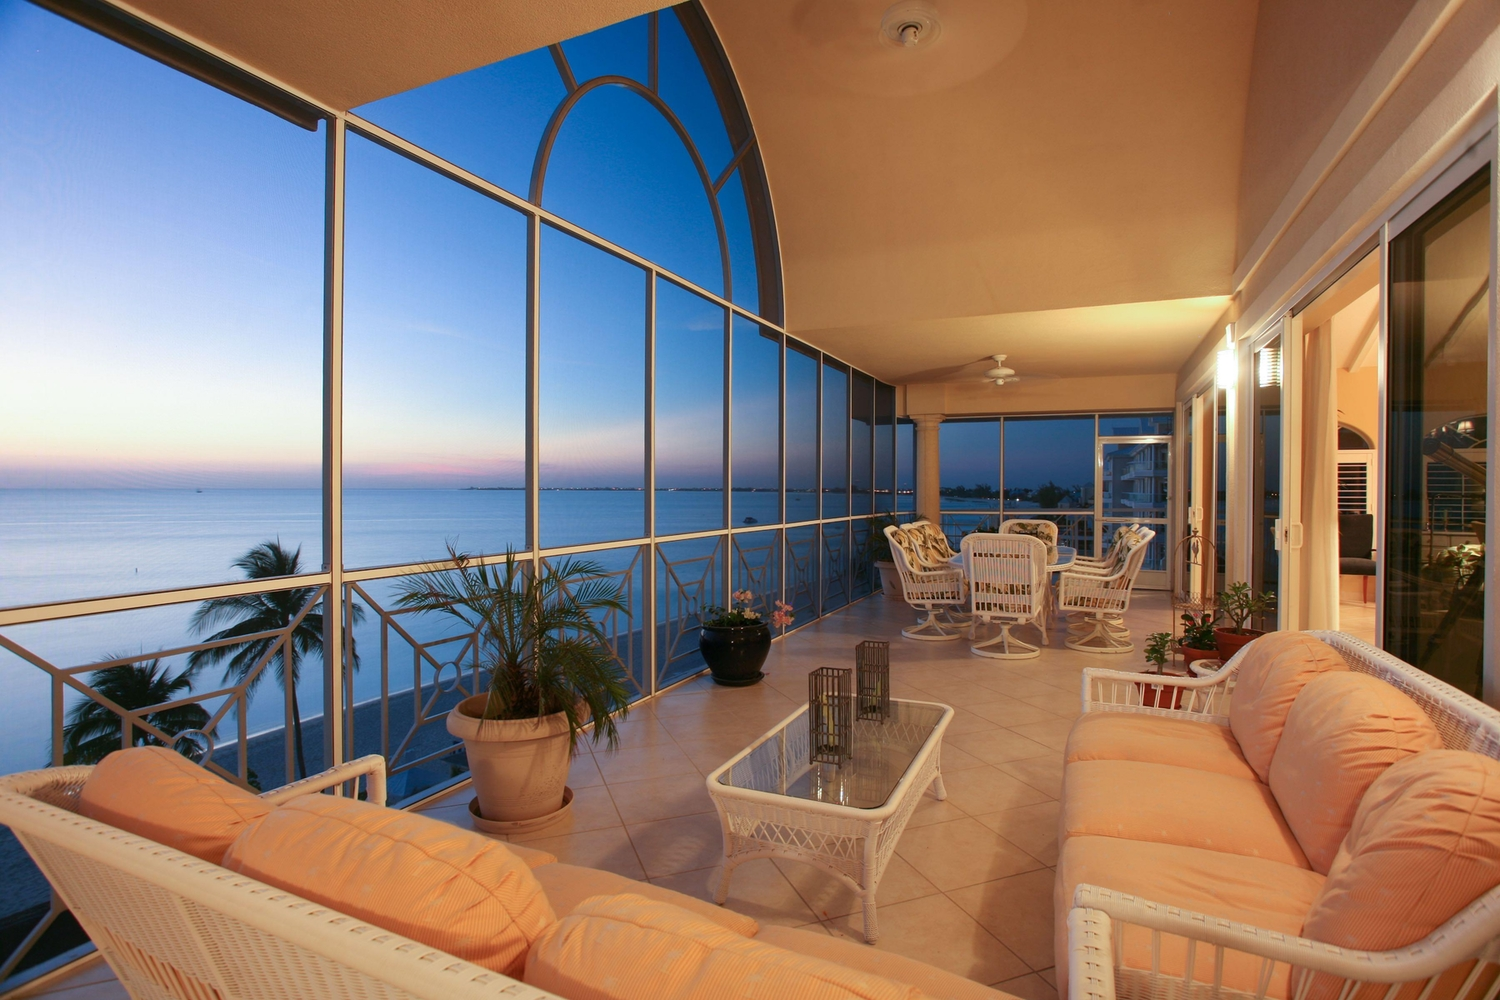 Enclosed patio overlooking the ocean at sunset